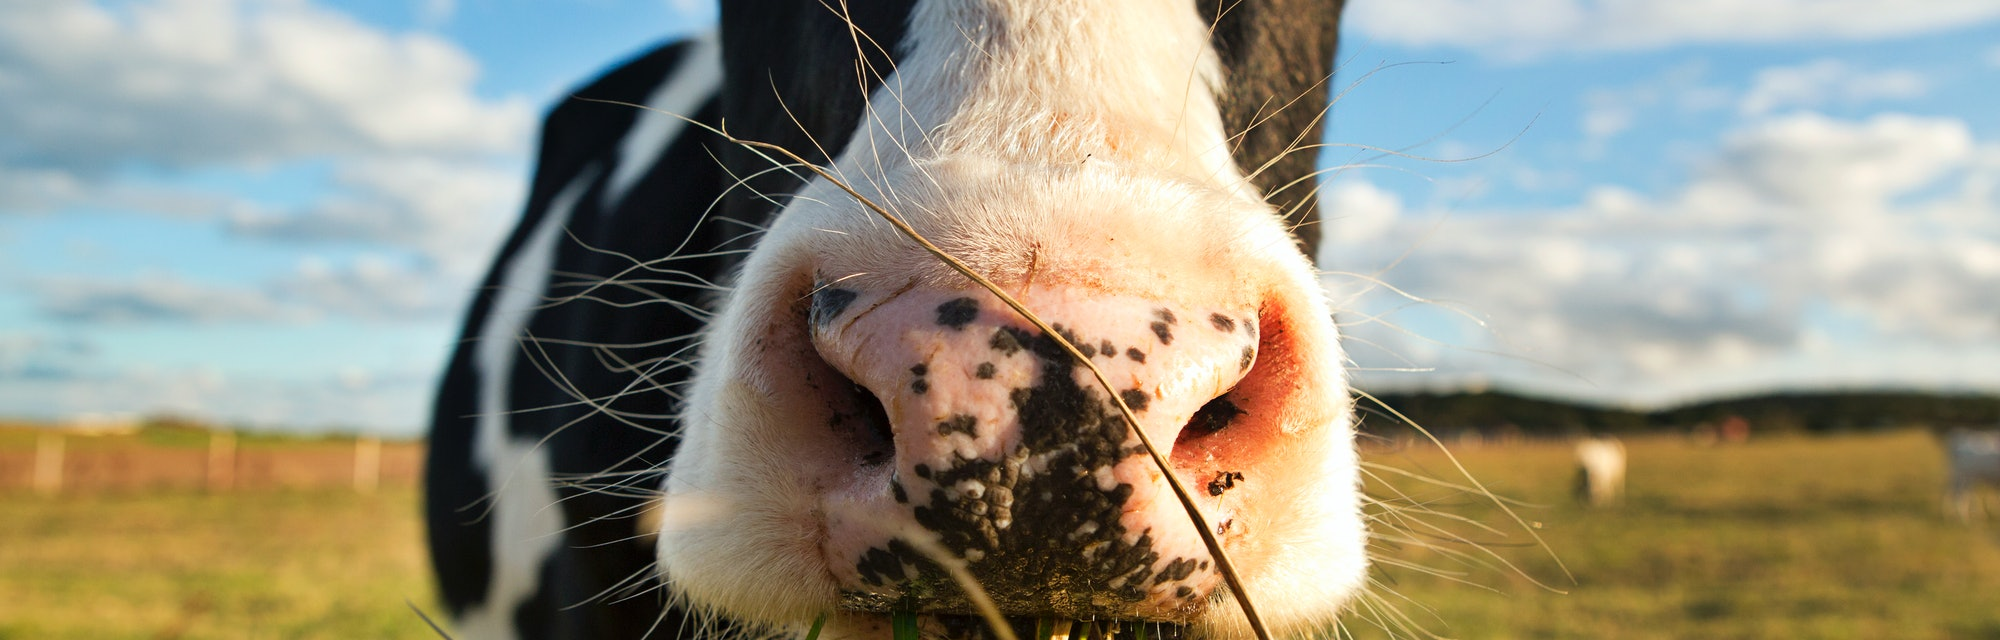 Cow closeup chewing grass and feed